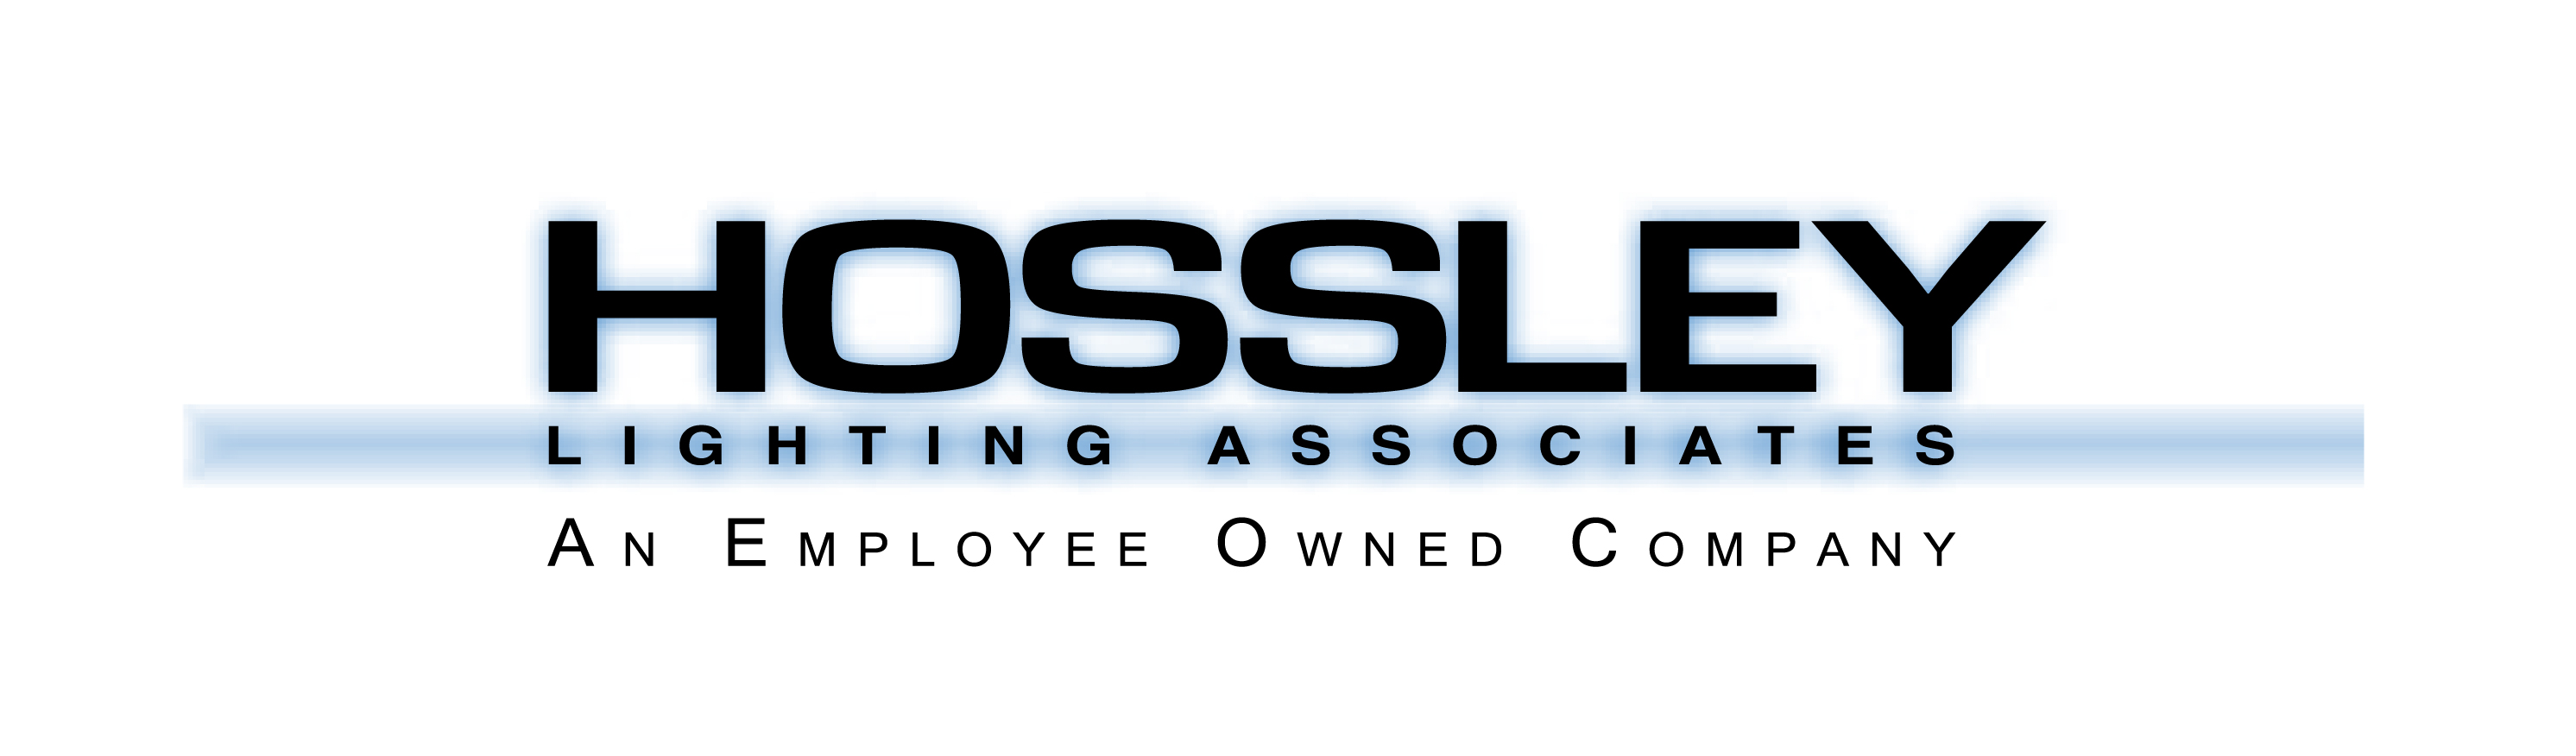 2020 Chapter Meeting Sponsor - Hossley logo